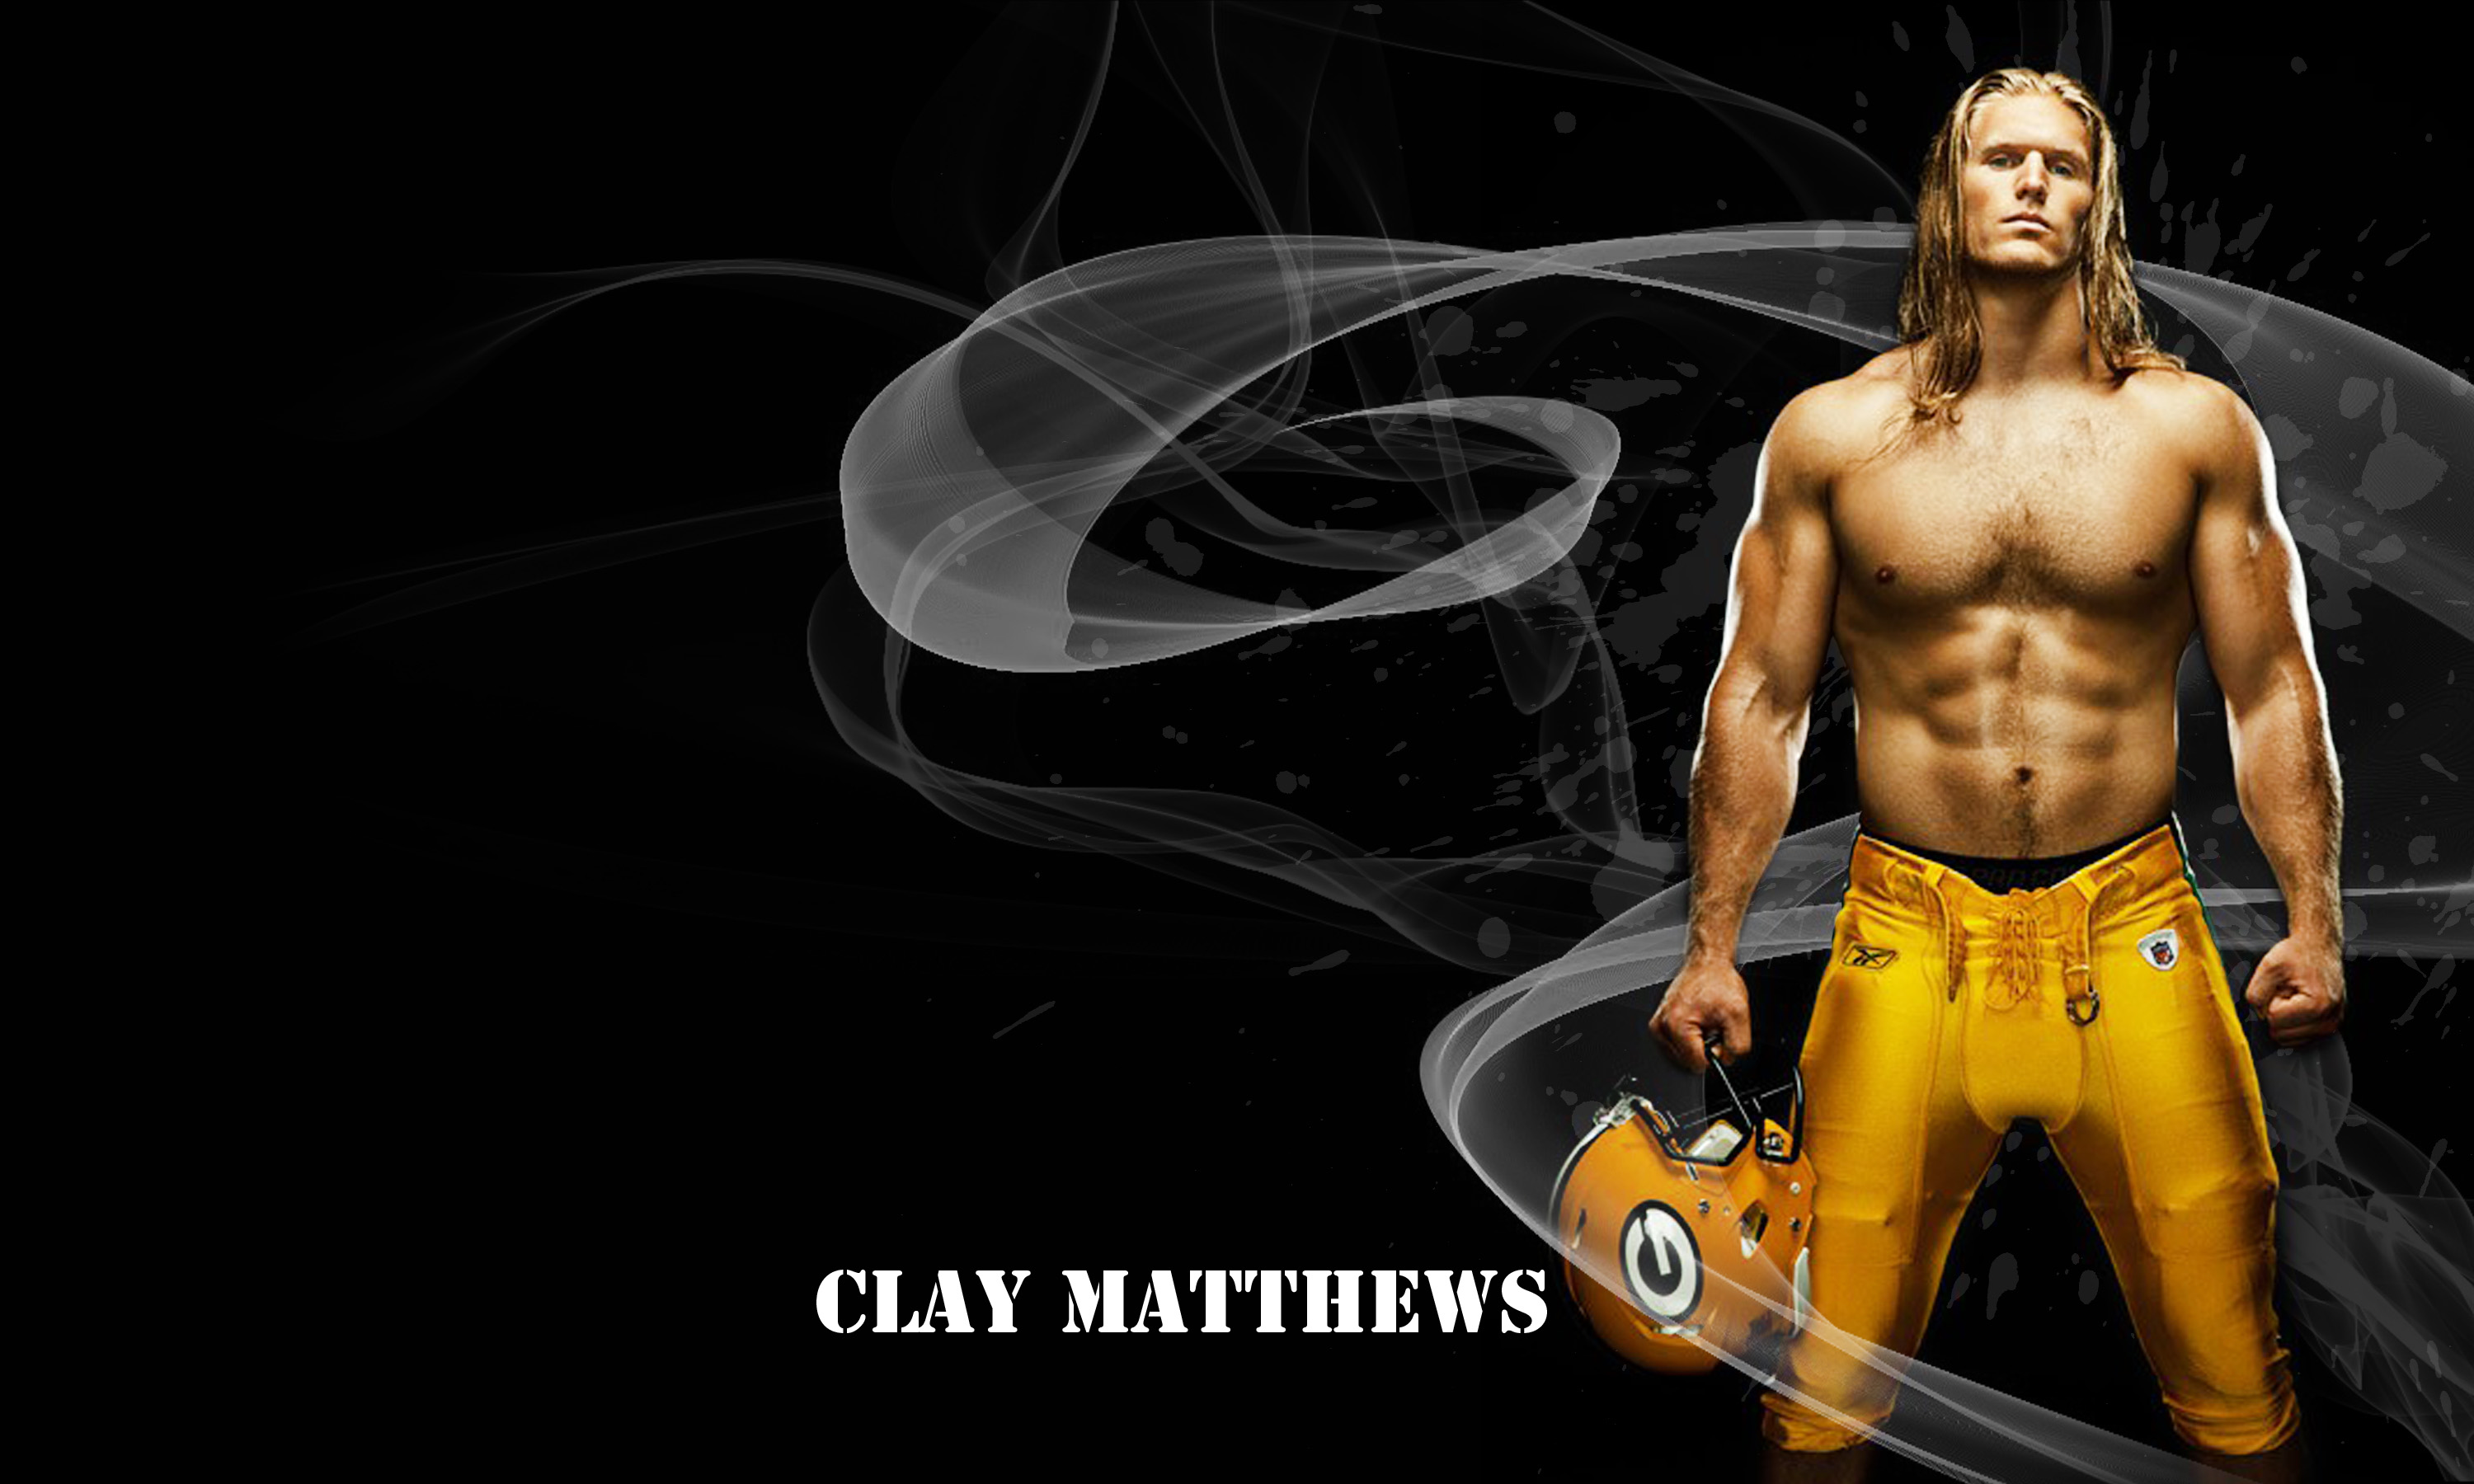 clay matthews instagramclay matthews iii, clay matthews spotrac, clay matthews pfr, clay matthews injury report, clay matthews stats, clay matthews 49ers, clay matthews training, clay matthews sr, clay matthews instagram, clay matthews workout routine, clay matthews iii instagram, clay matthews browns, clay matthews height, clay matthews wife, clay matthews jr, clay matthews brother, clay matthews pitch perfect 2, clay matthews married, clay matthews workout, clay matthews highlights